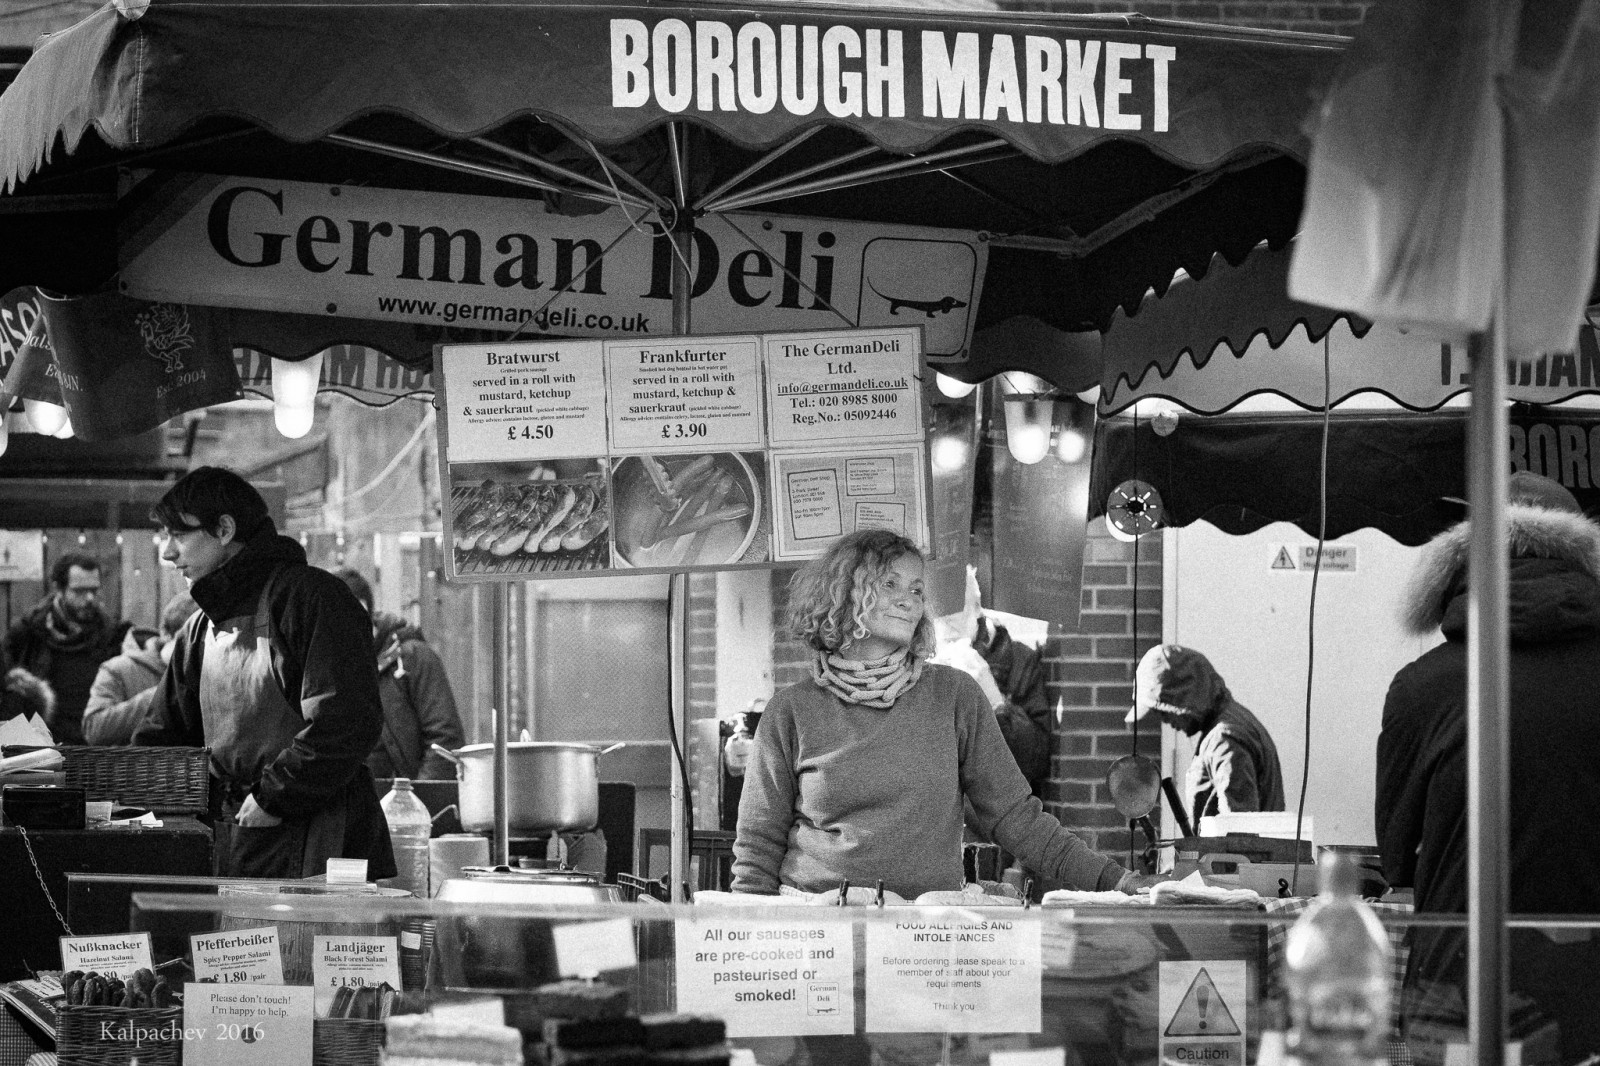 German Deli at Borough market